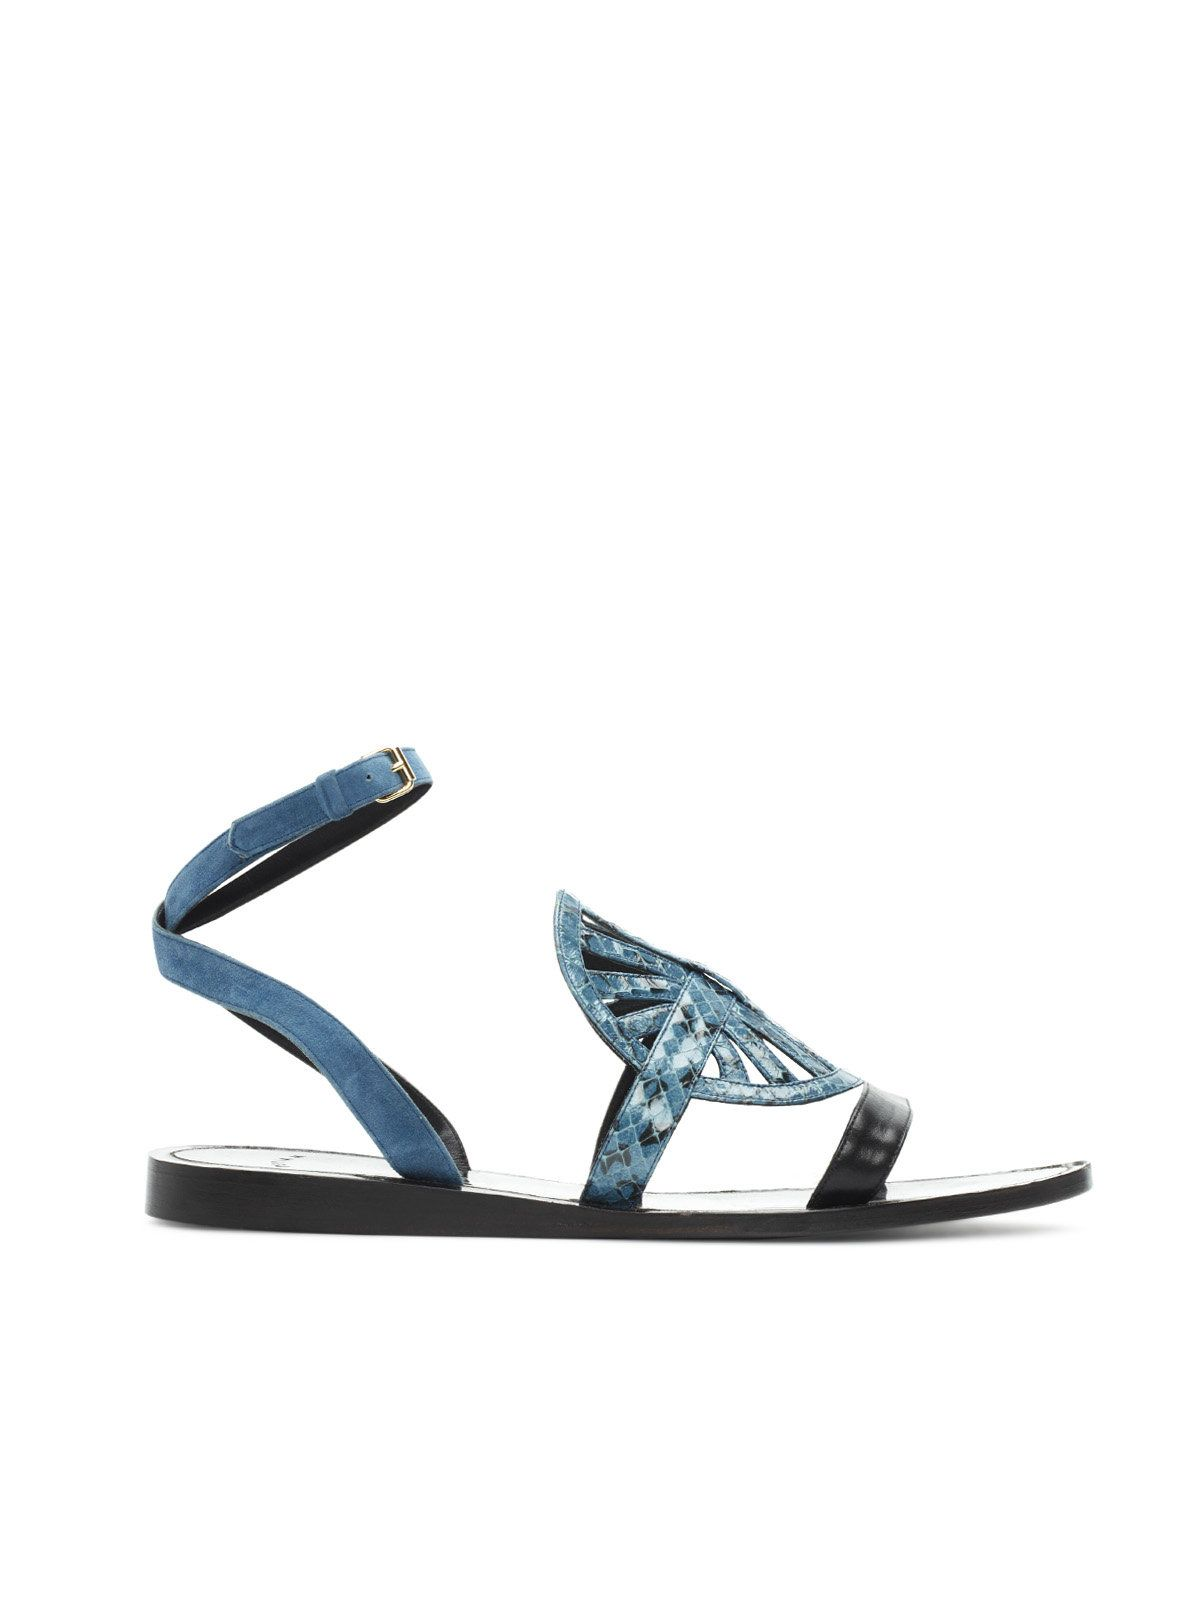 Disk Sandal -   Color block whip snake and smooth leather disk flat sandal with adjustable suede wrap ankle straps. $750